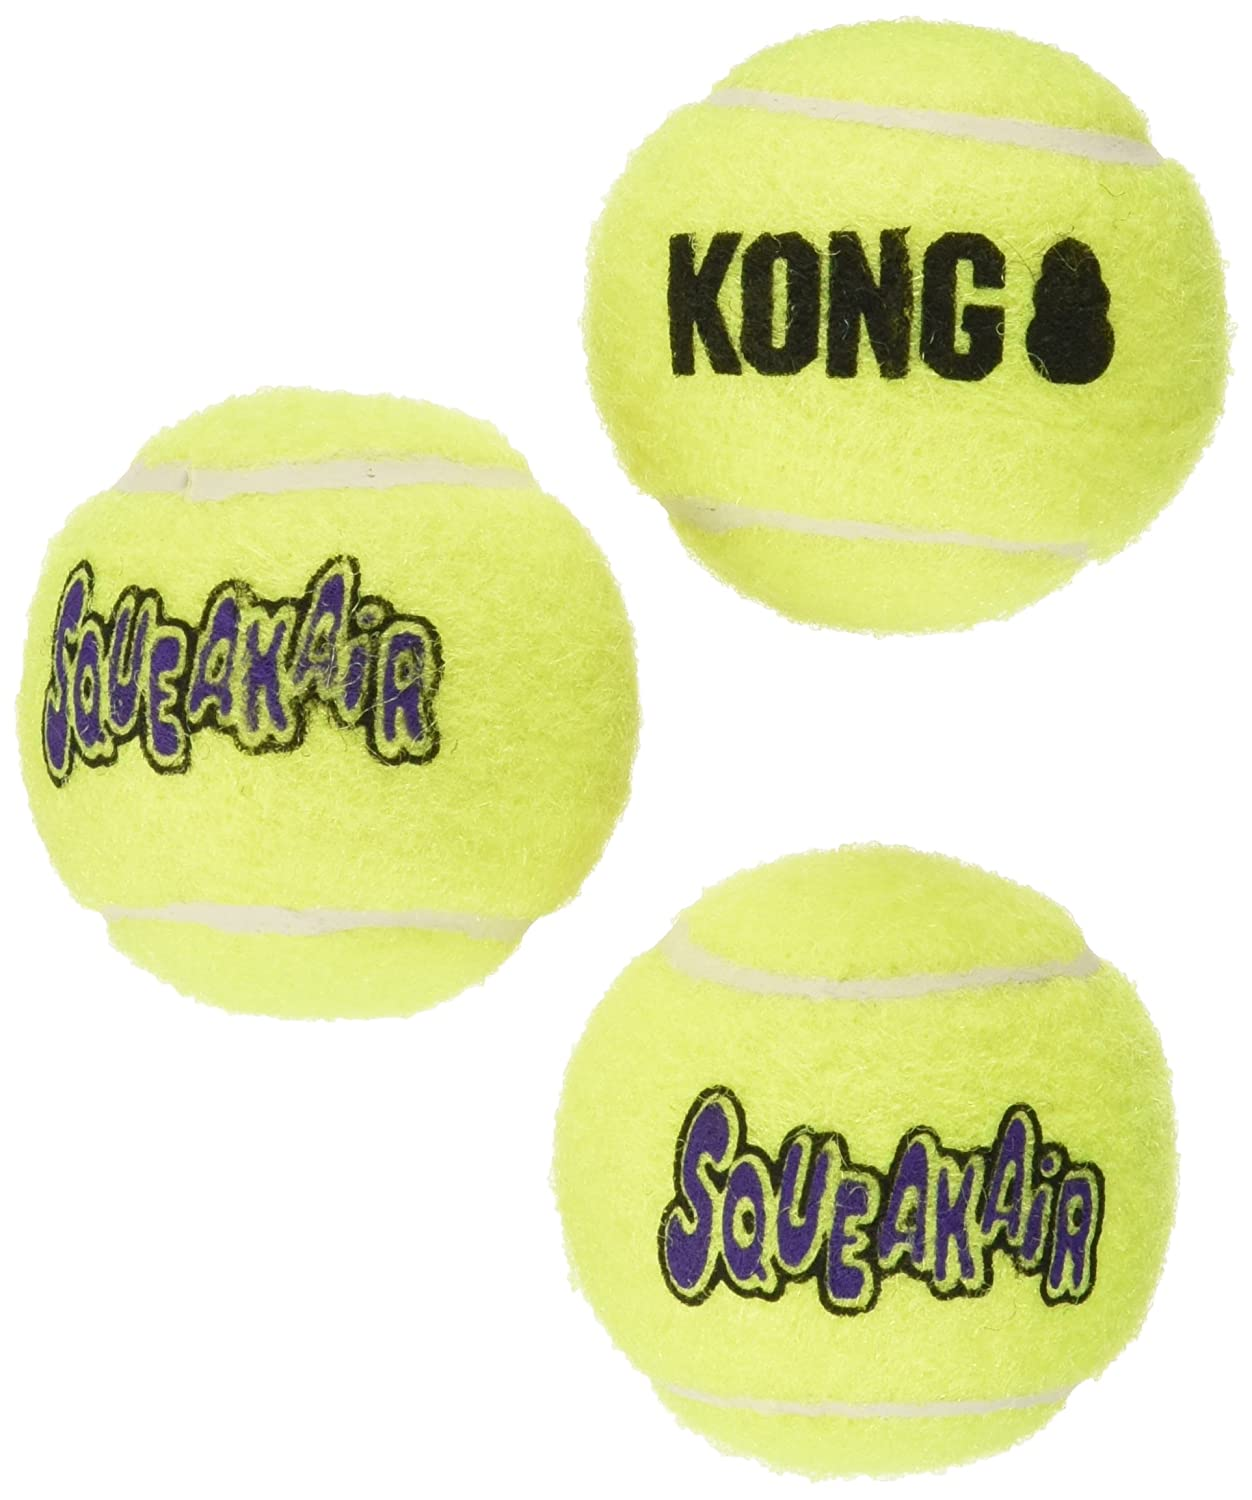 KONG3 Piece Air Squeaker Tennis Balls (3 Pack), Small AST3-3